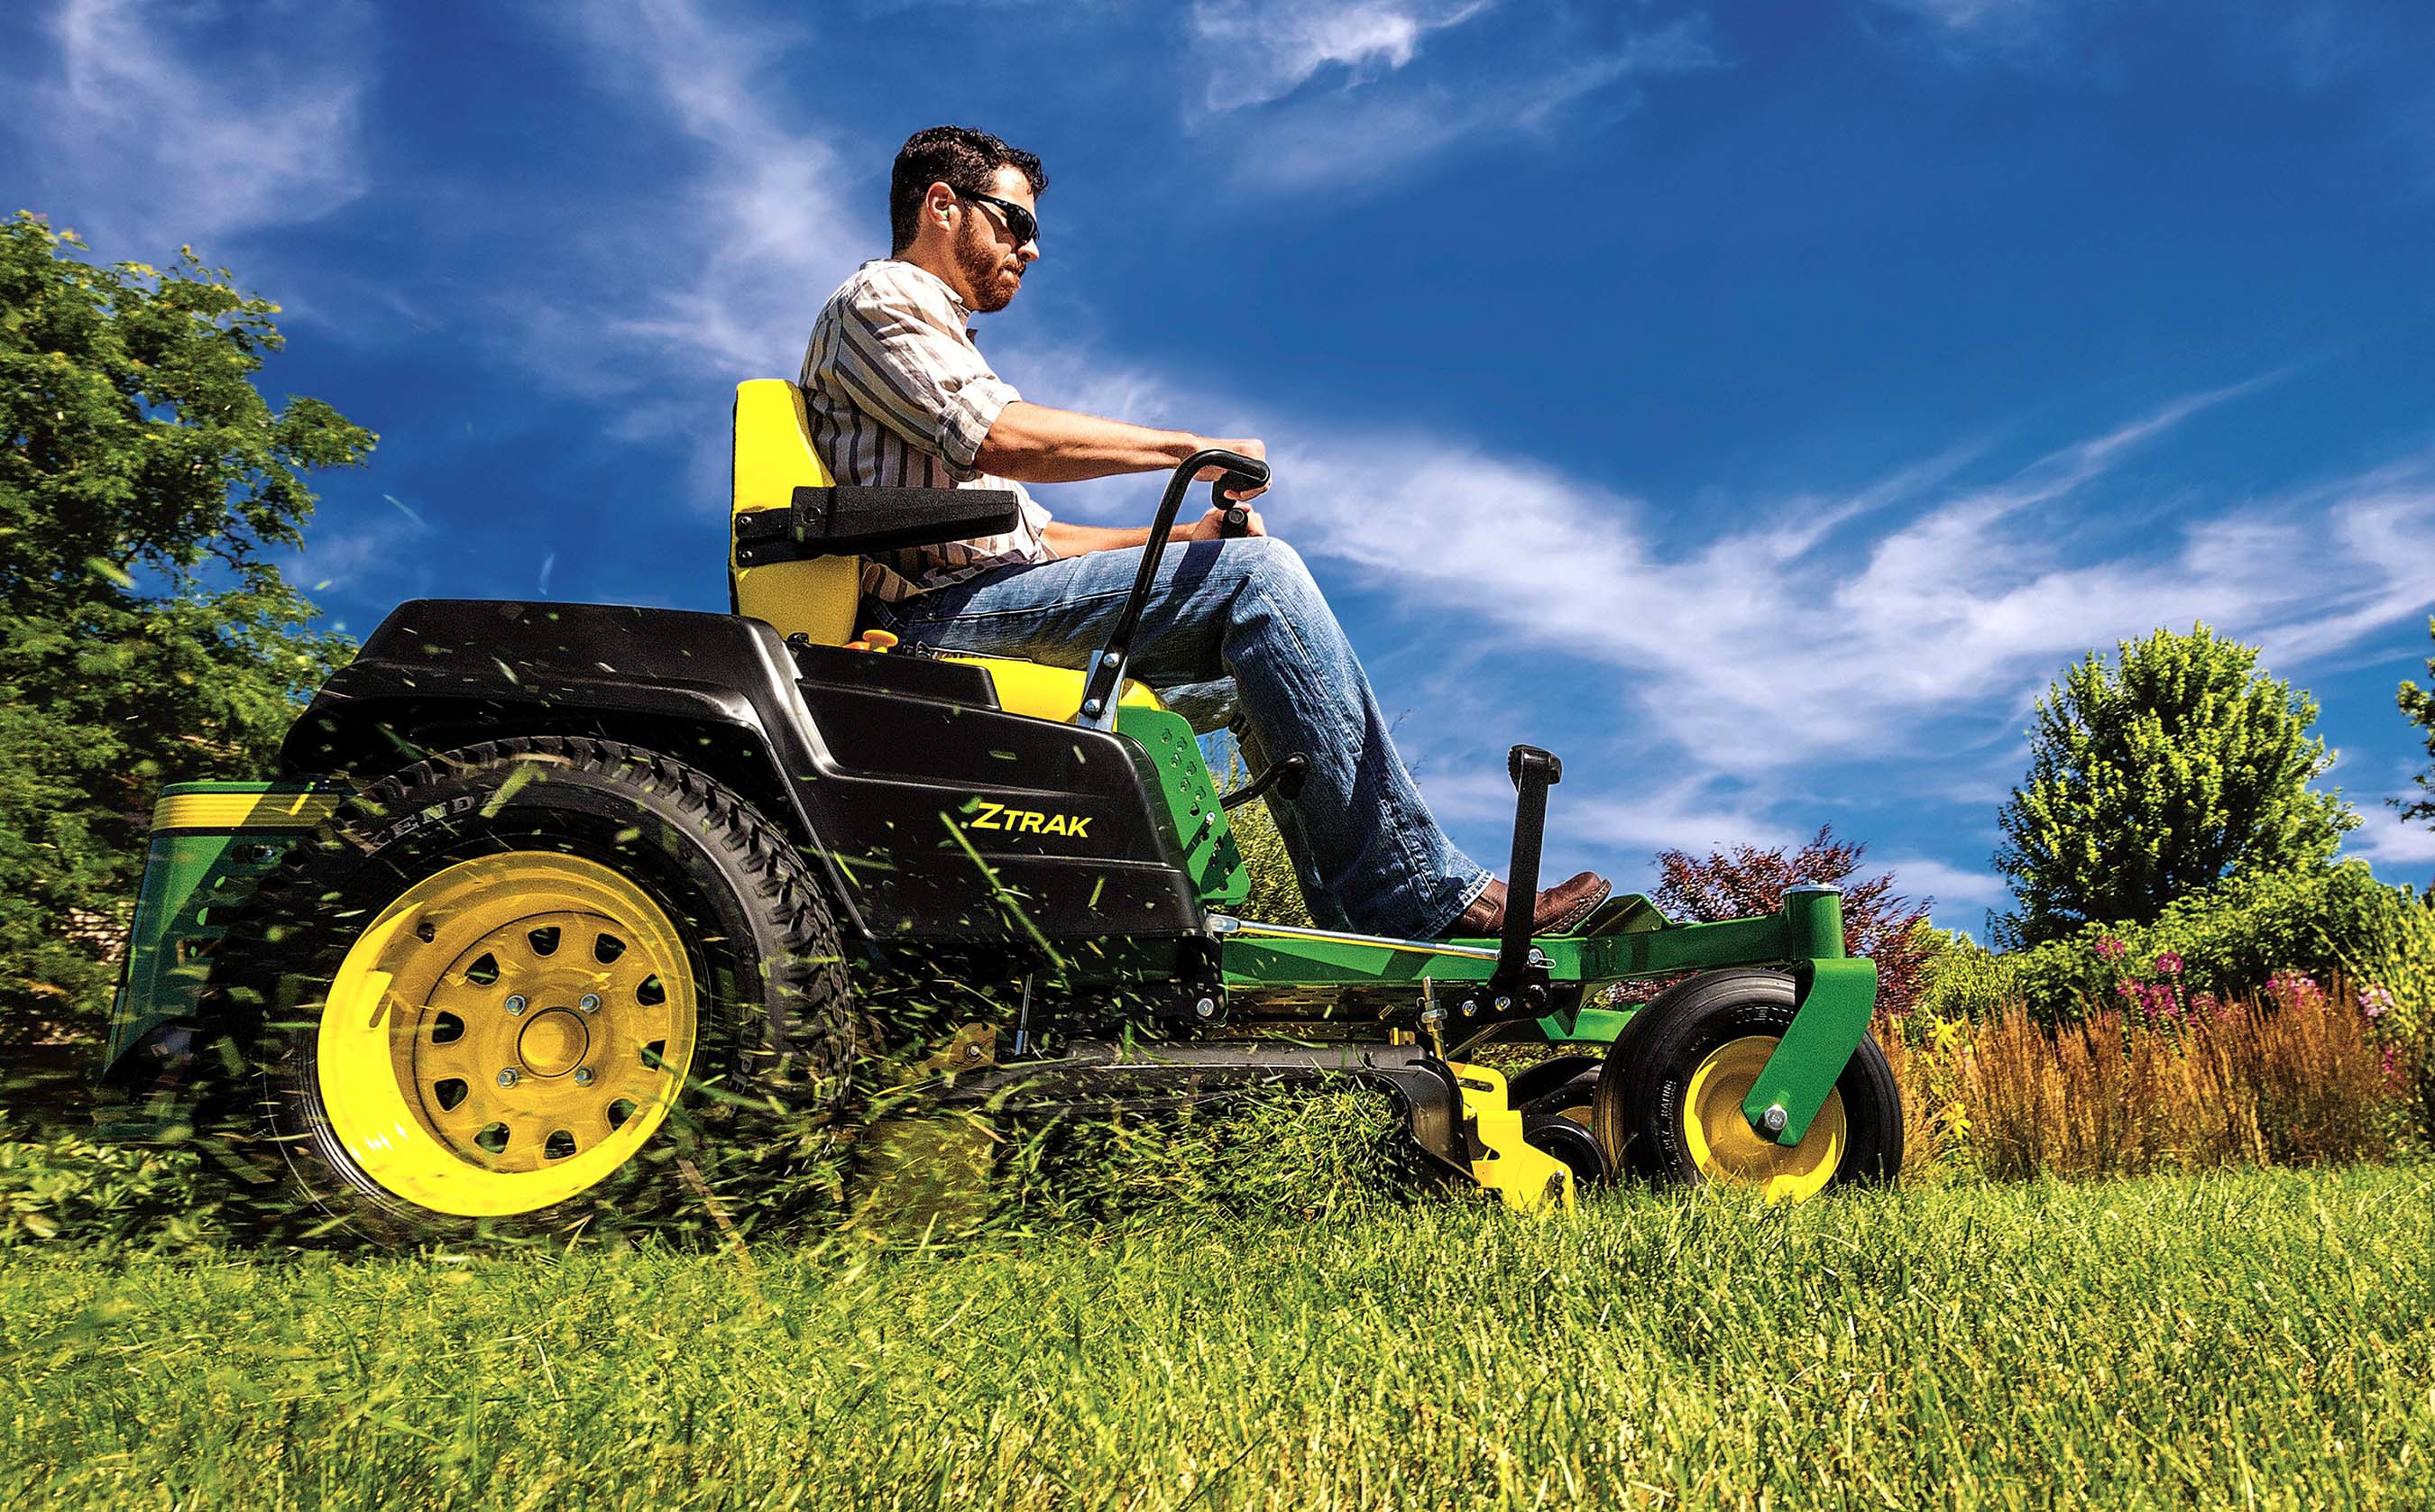 Turning Radius Jd 4555 : Love for the lawn millennials covet best on